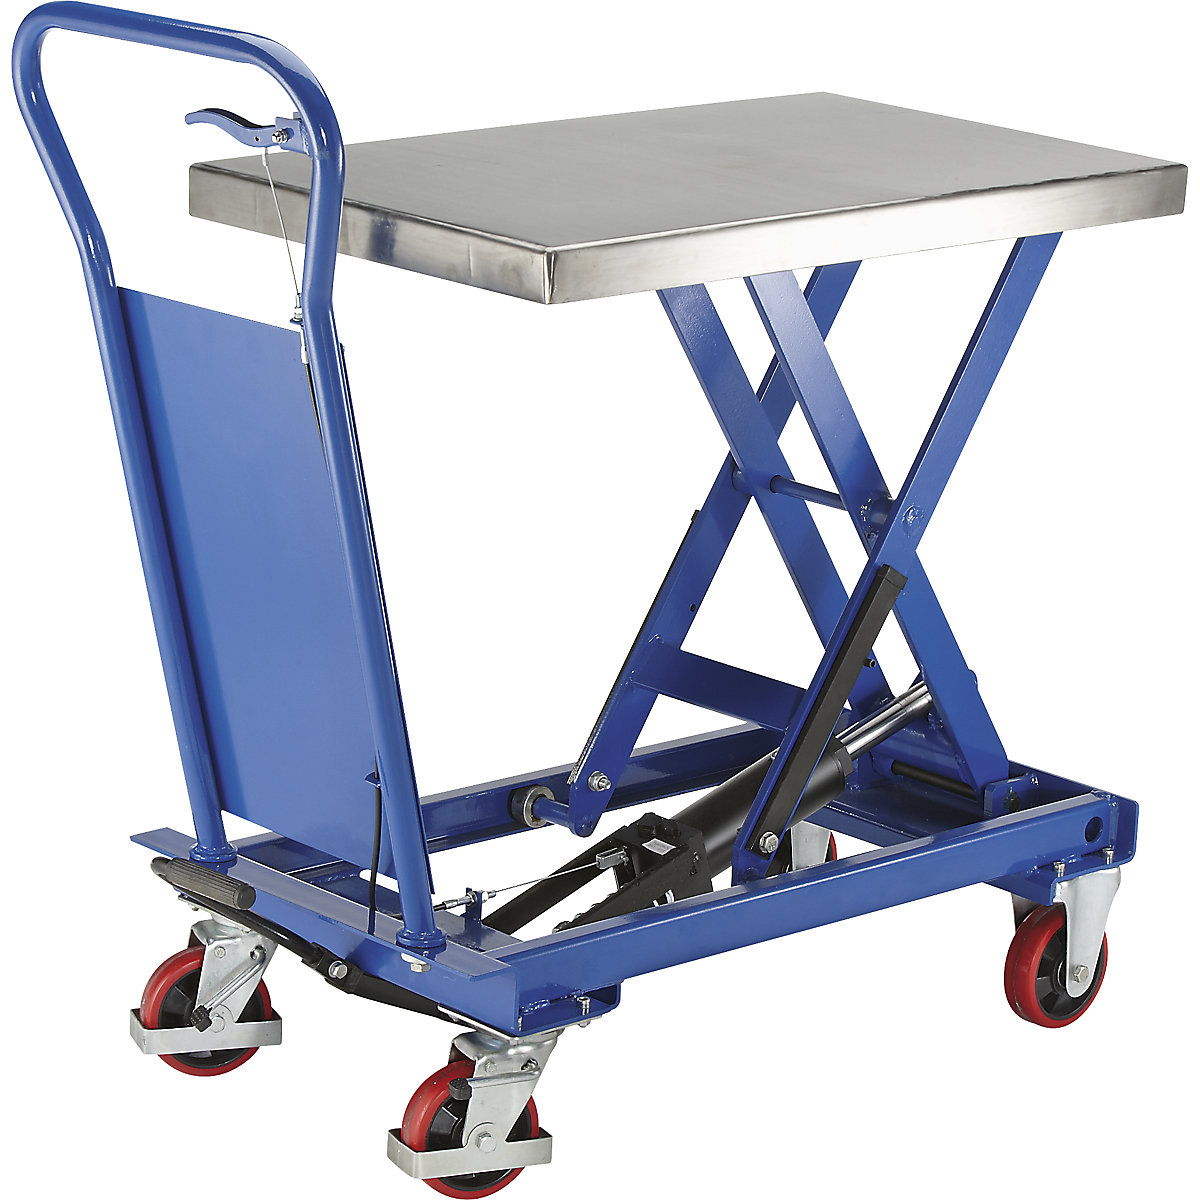 With stainless steel platform, max. load 250 kg